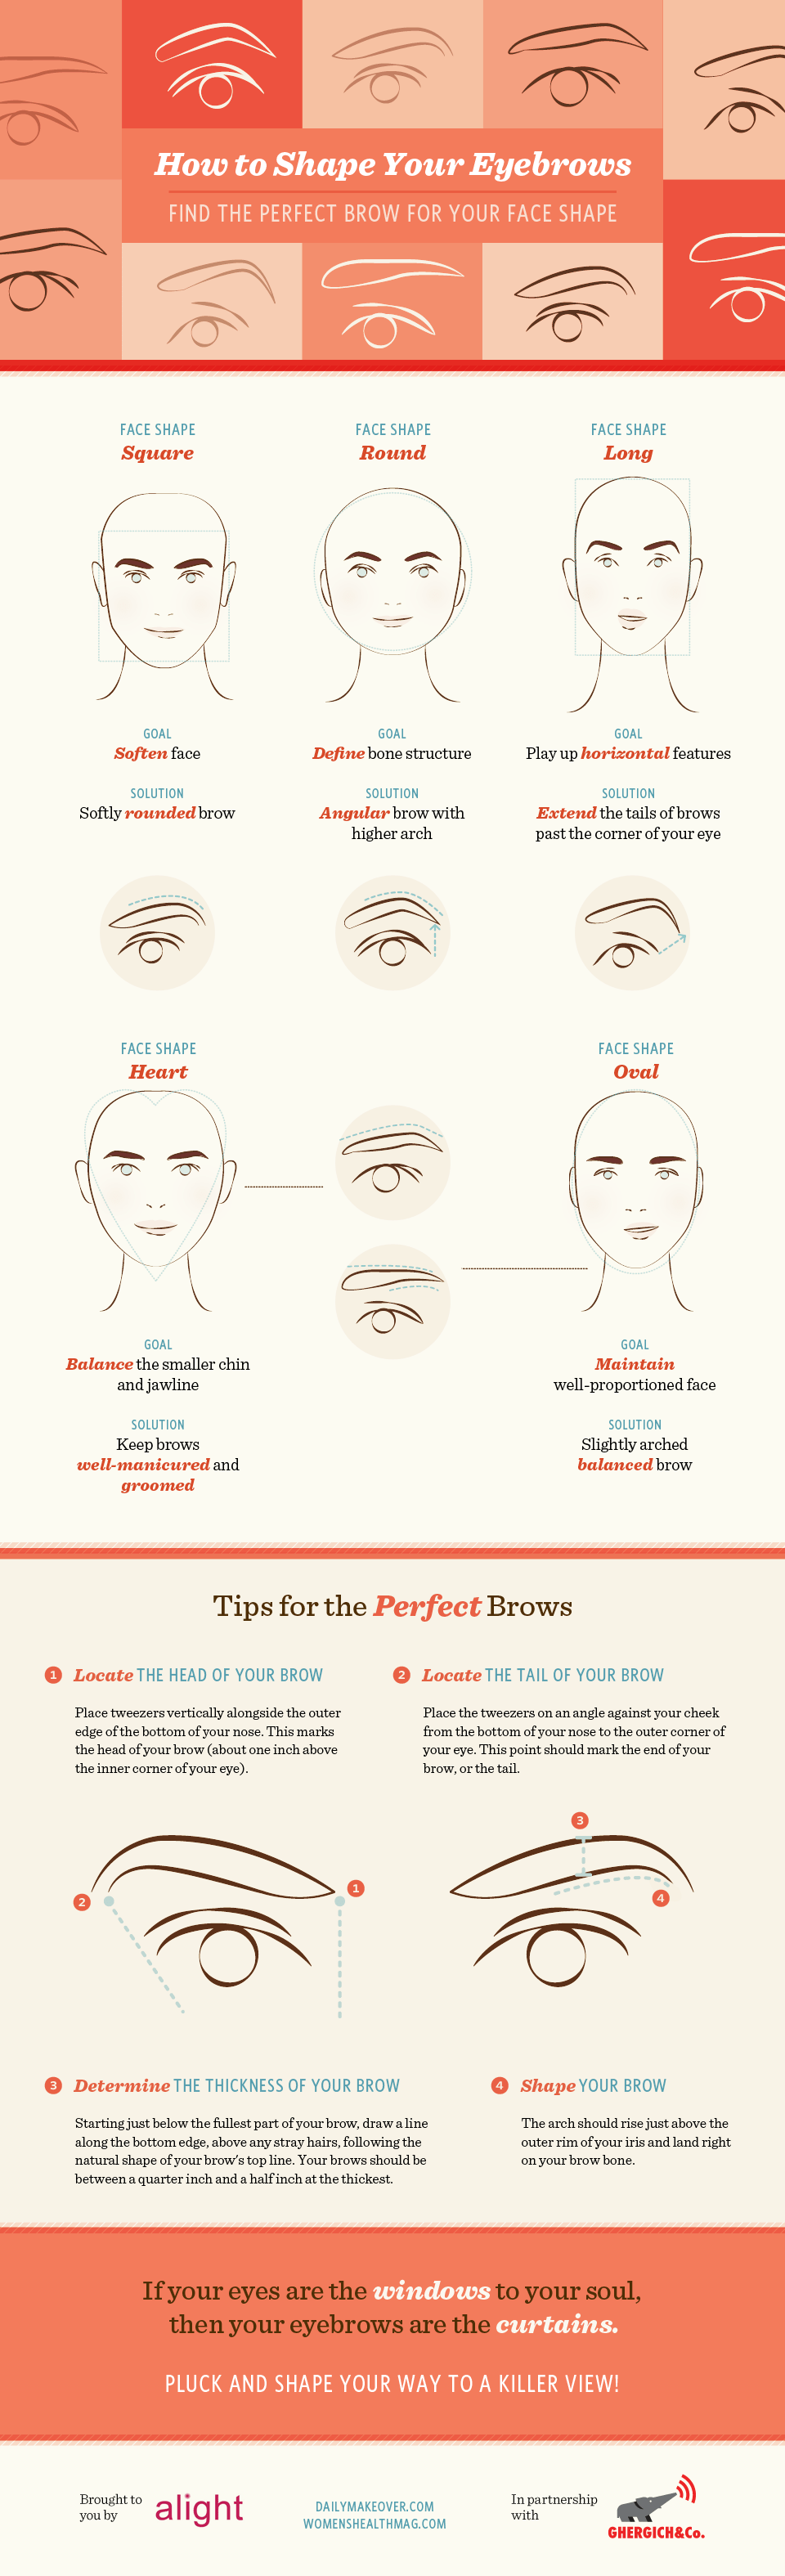 Which Eyebrows Are The Best For Your Face Shape